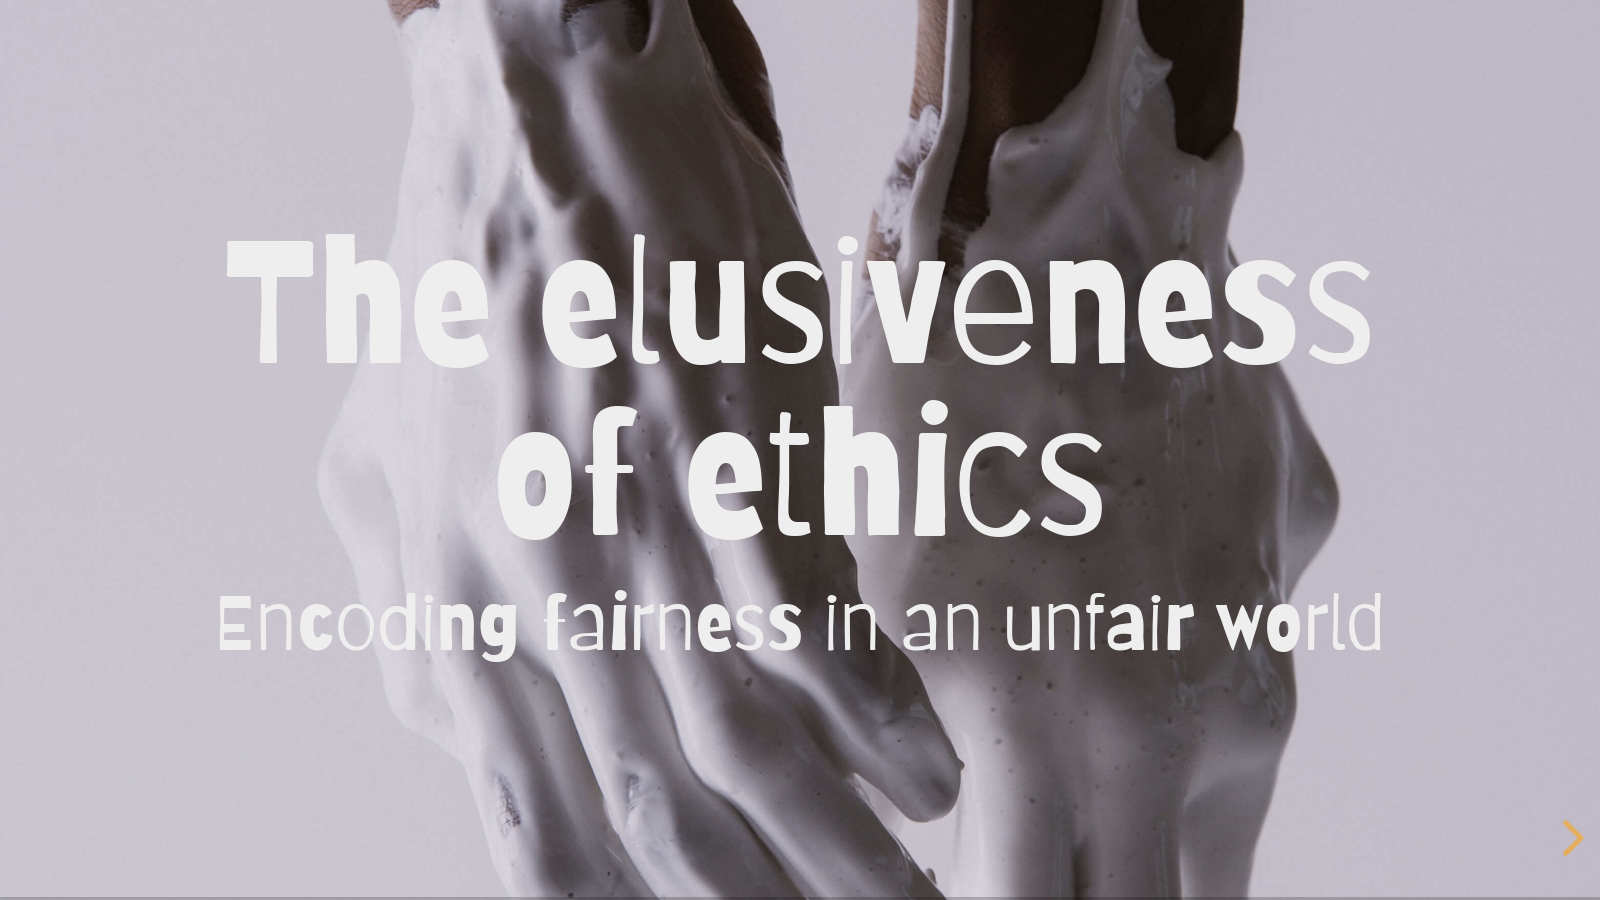 The elusiveness of ethics: encoding fairness in an unfair world